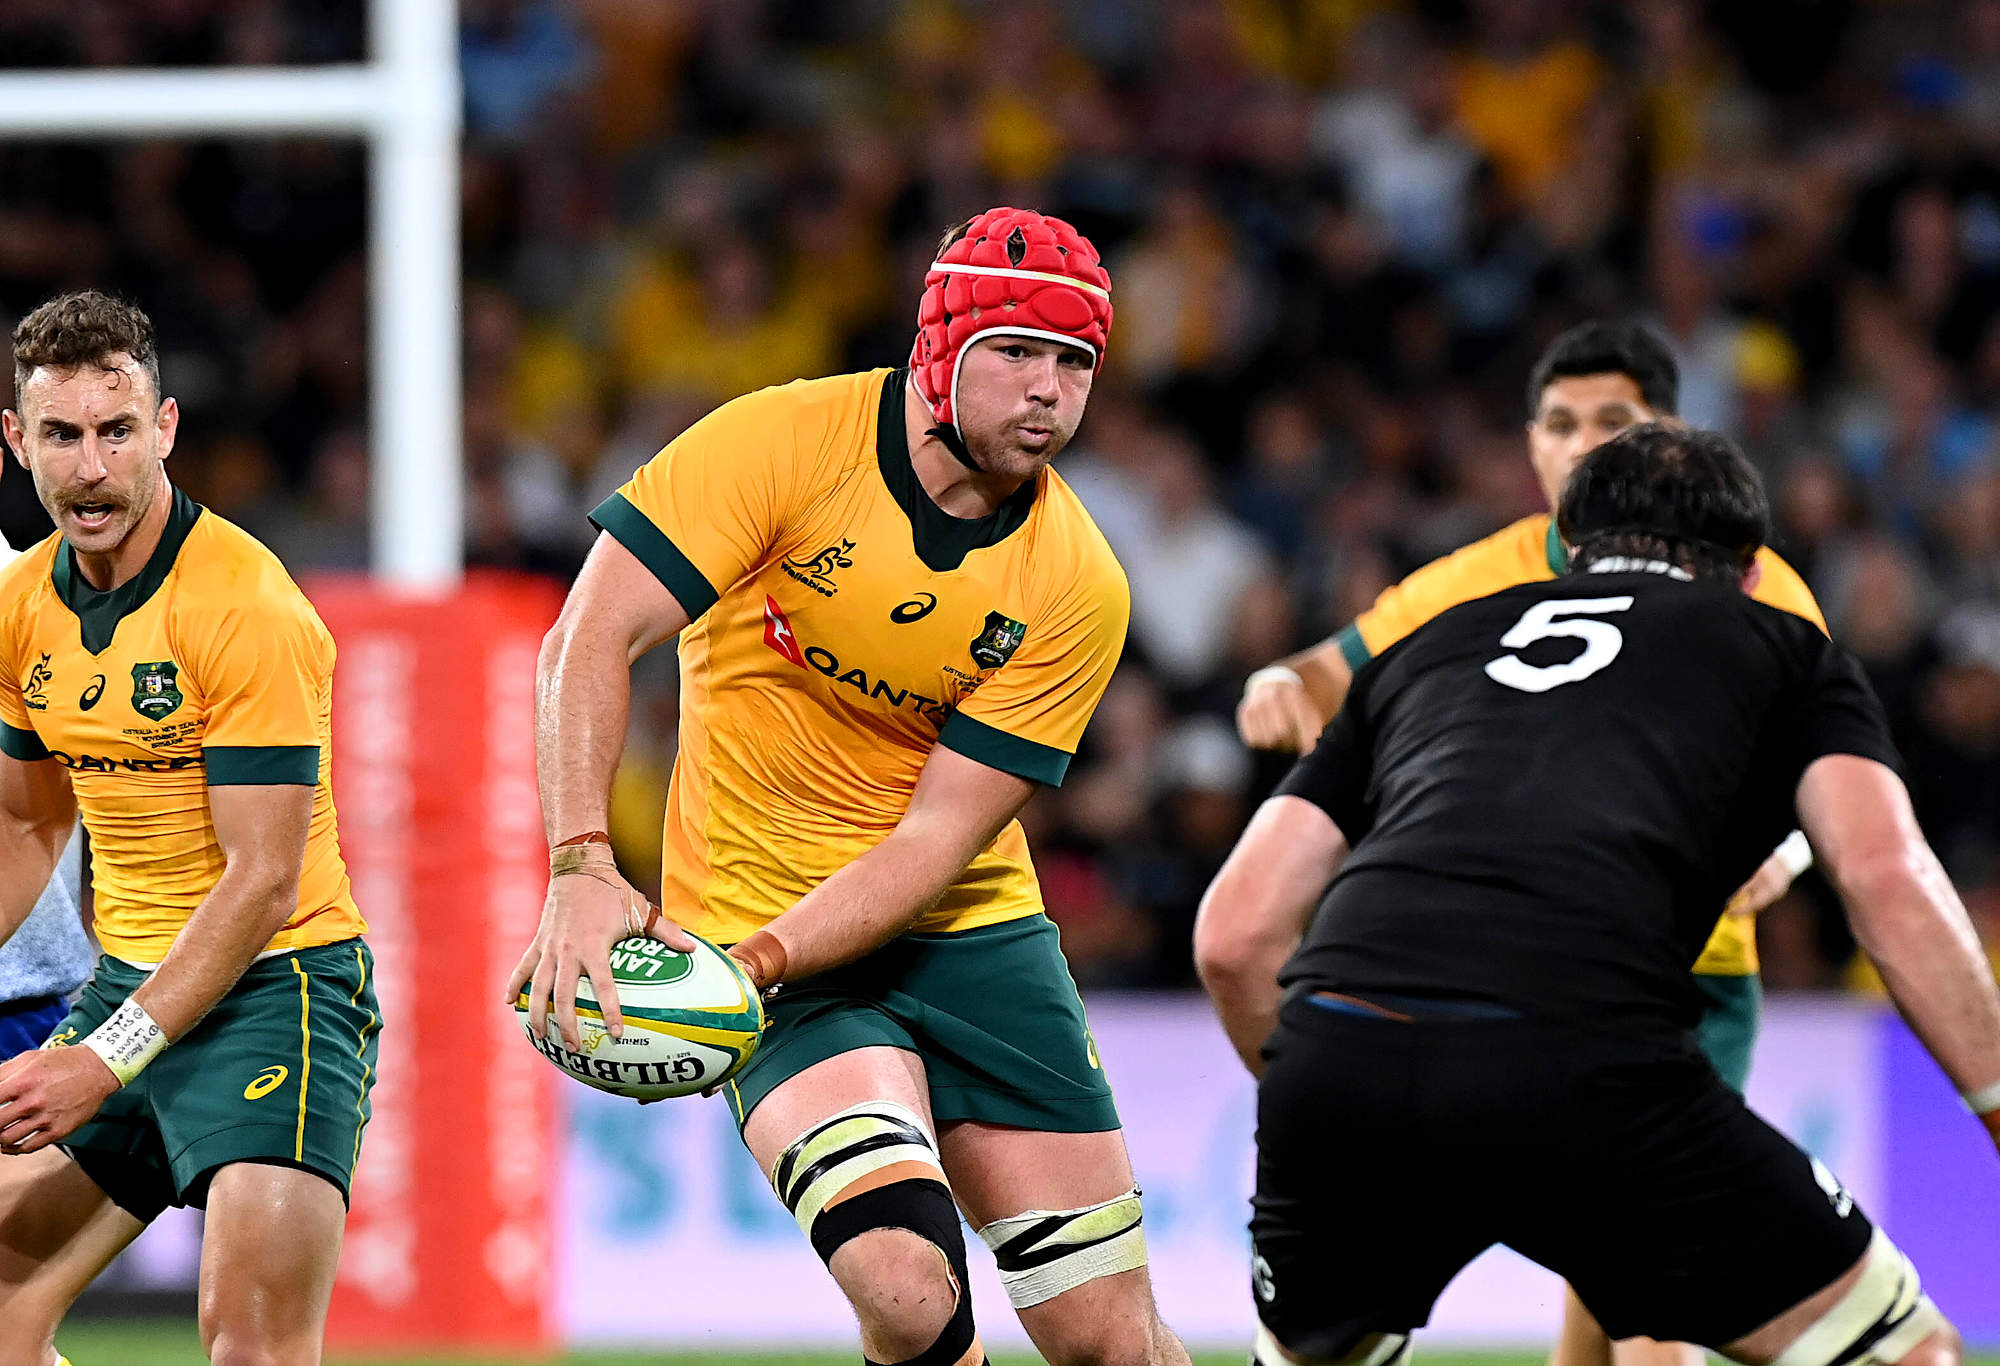 Harry Wilson of the Wallabies goes for a run